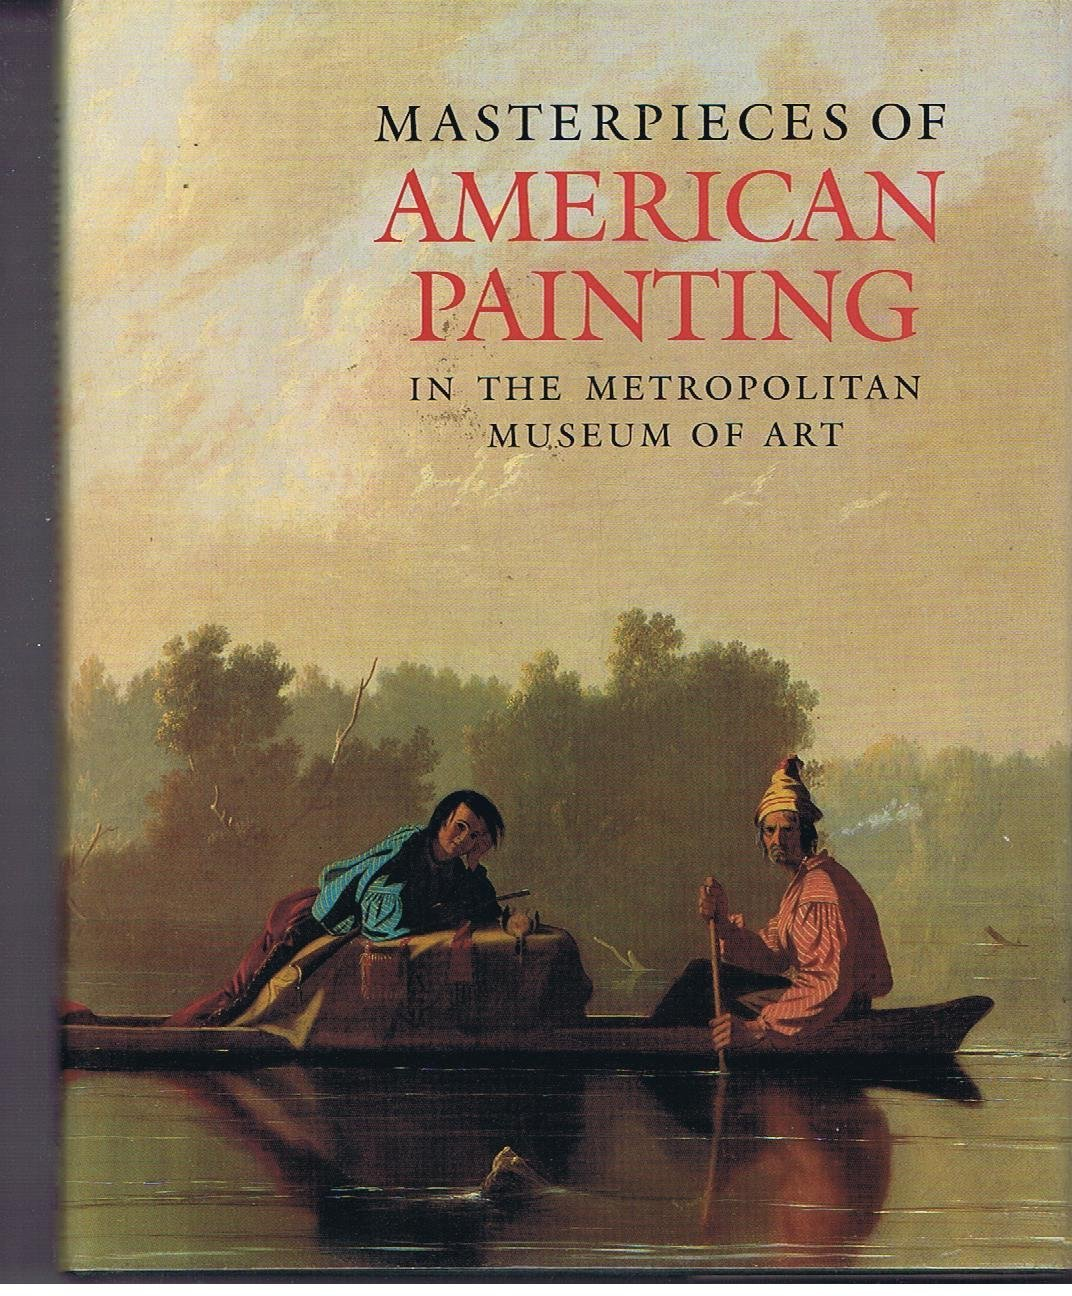 Masterpieces of American Painting in The Metropolitan Museum of Art